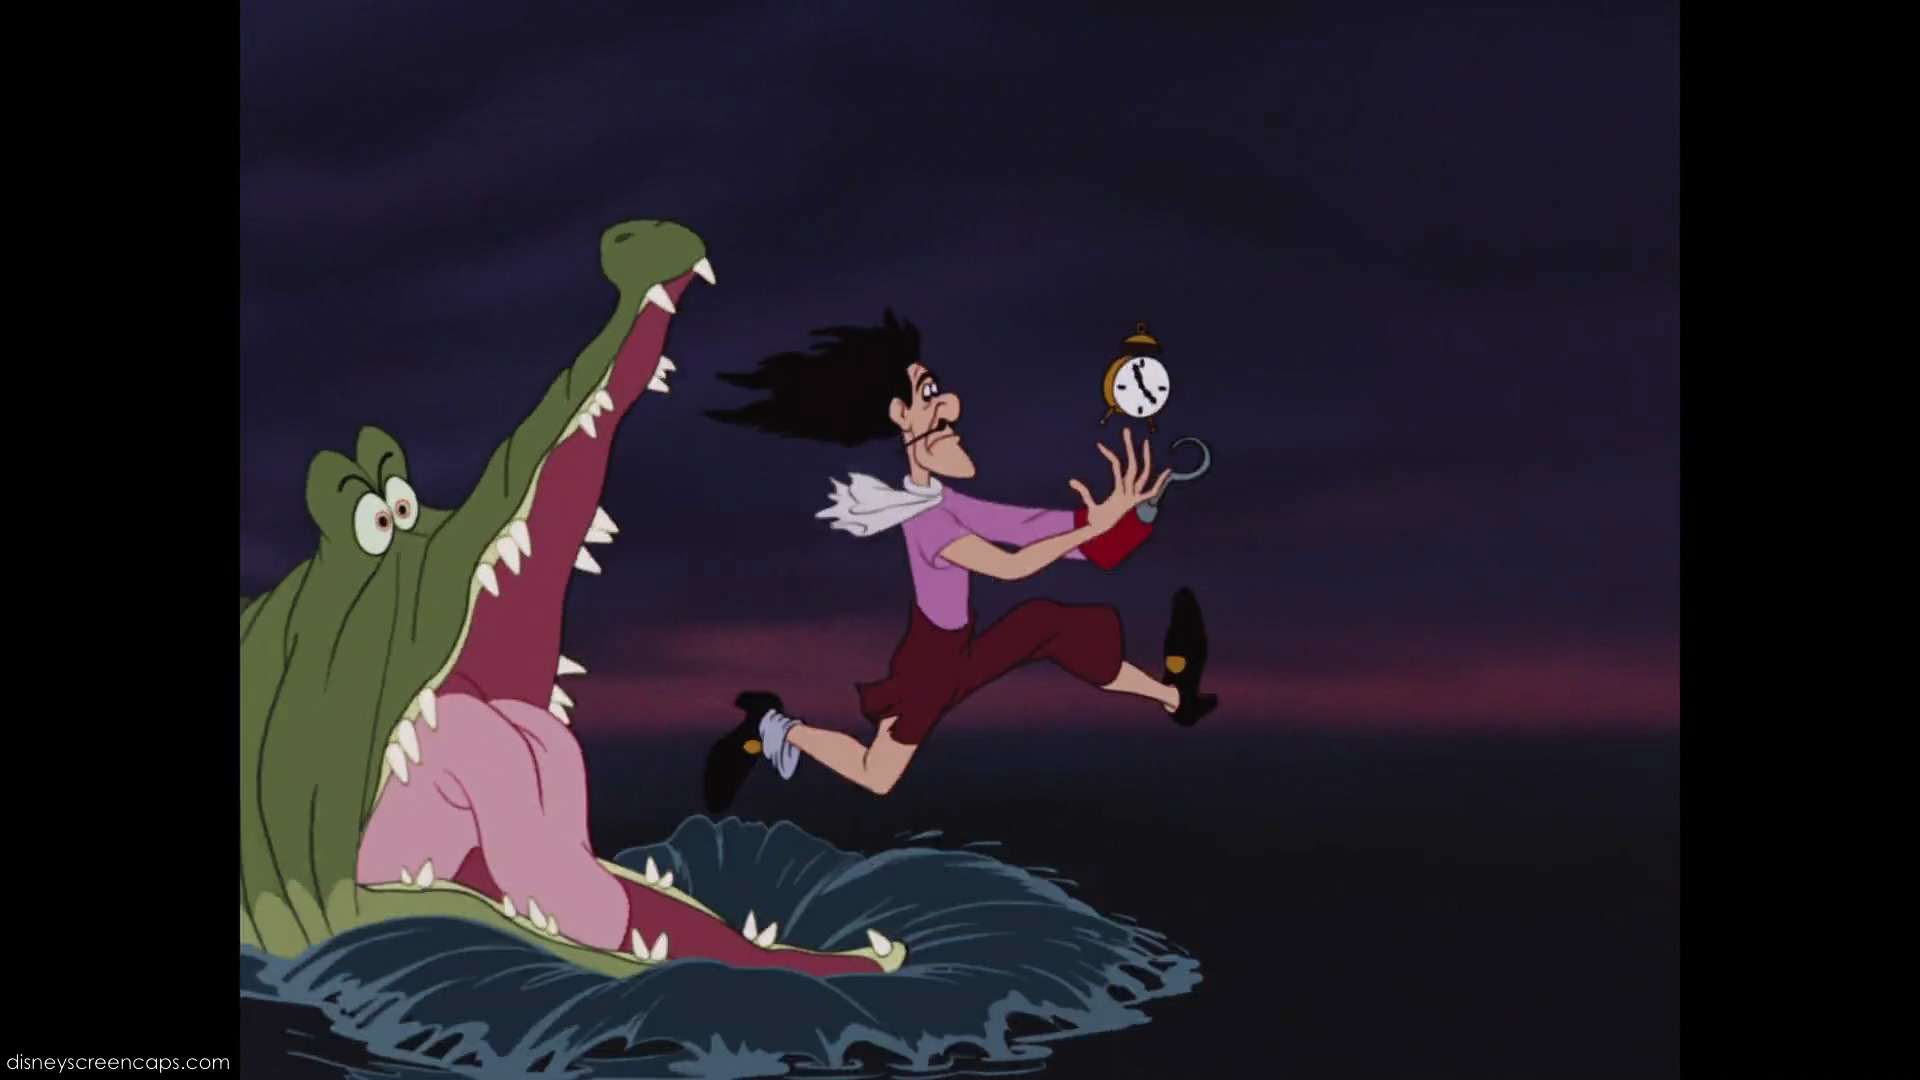 what did the crocodile swallow in peter pan